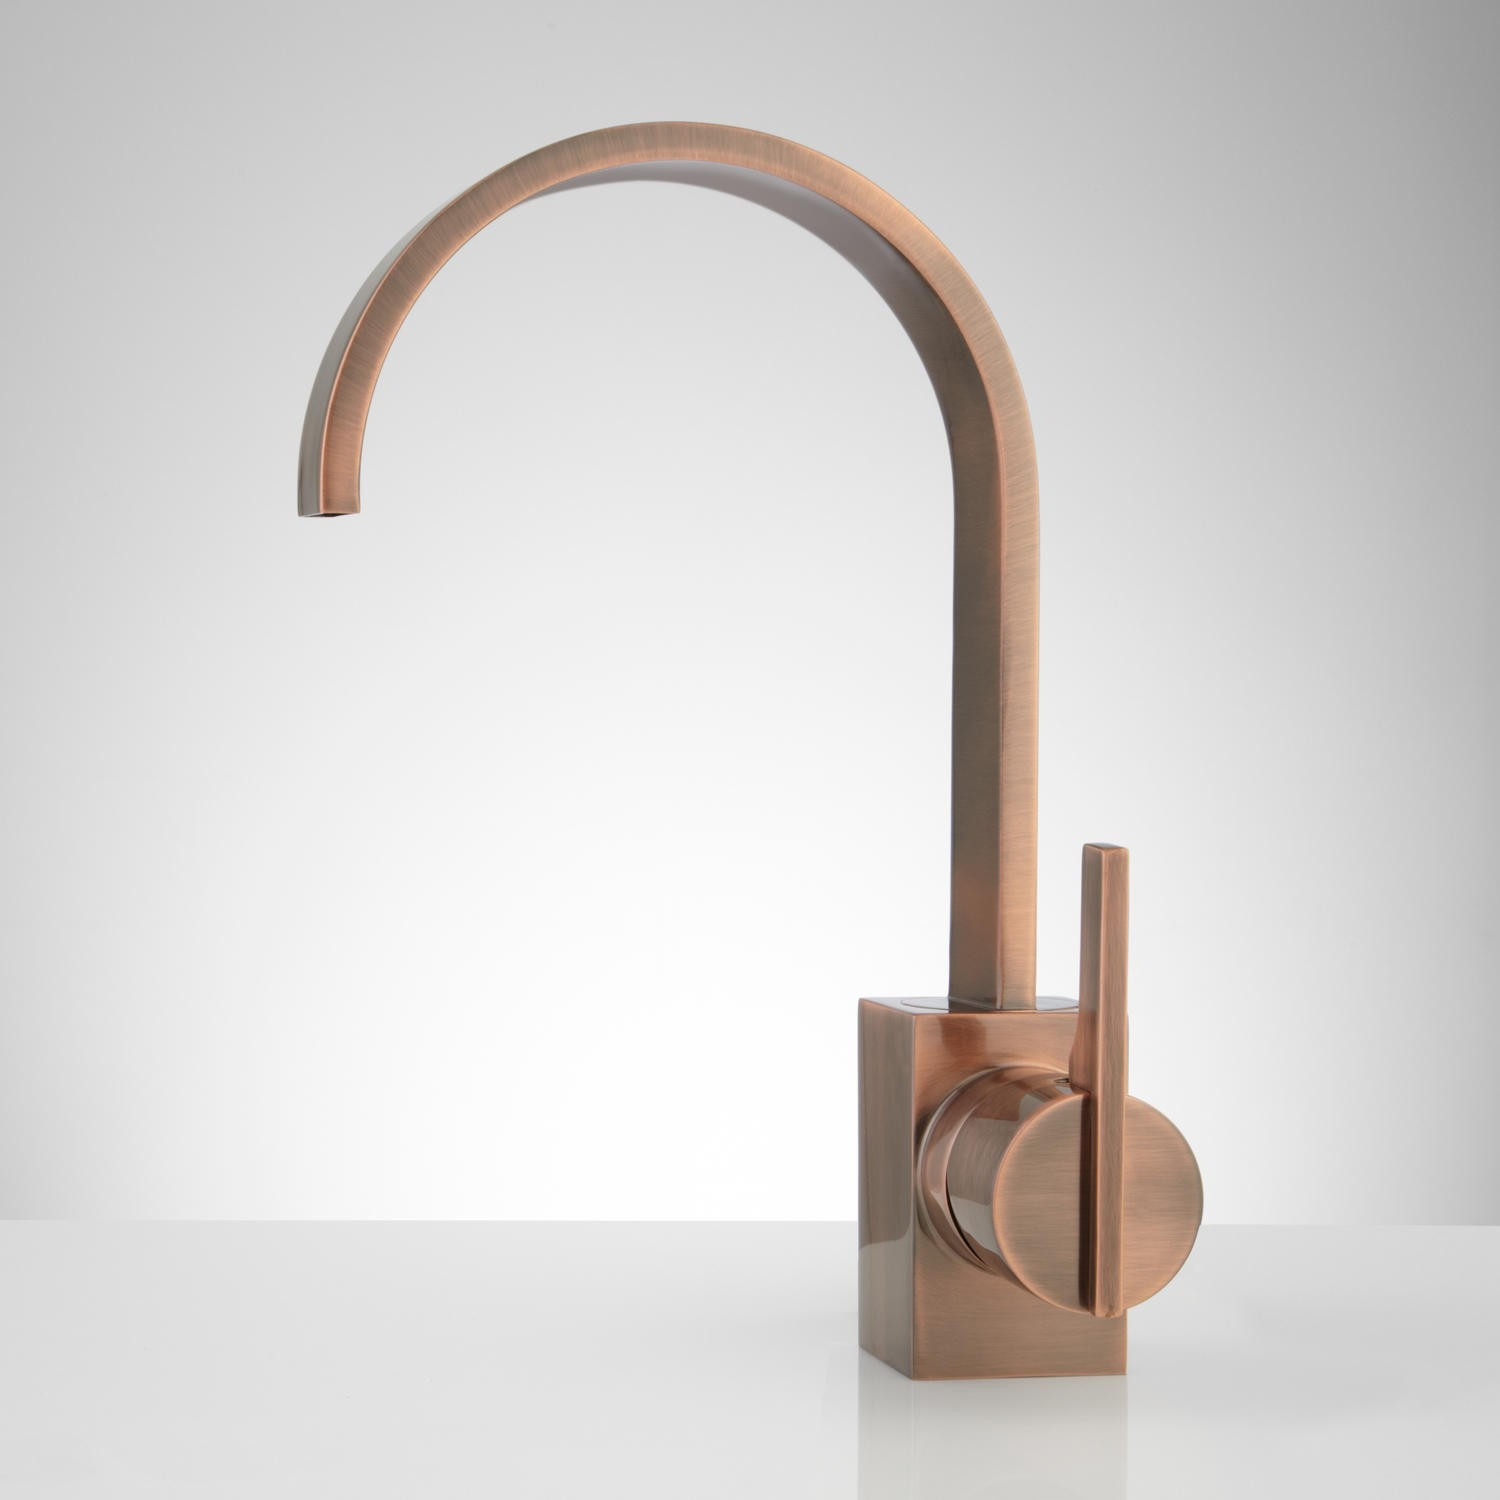 Ideas, copper bar sink and faucet copper bar sink and faucet ultra single hole kitchen faucet kitchen faucets kitchen 1500 x 1500 1  .